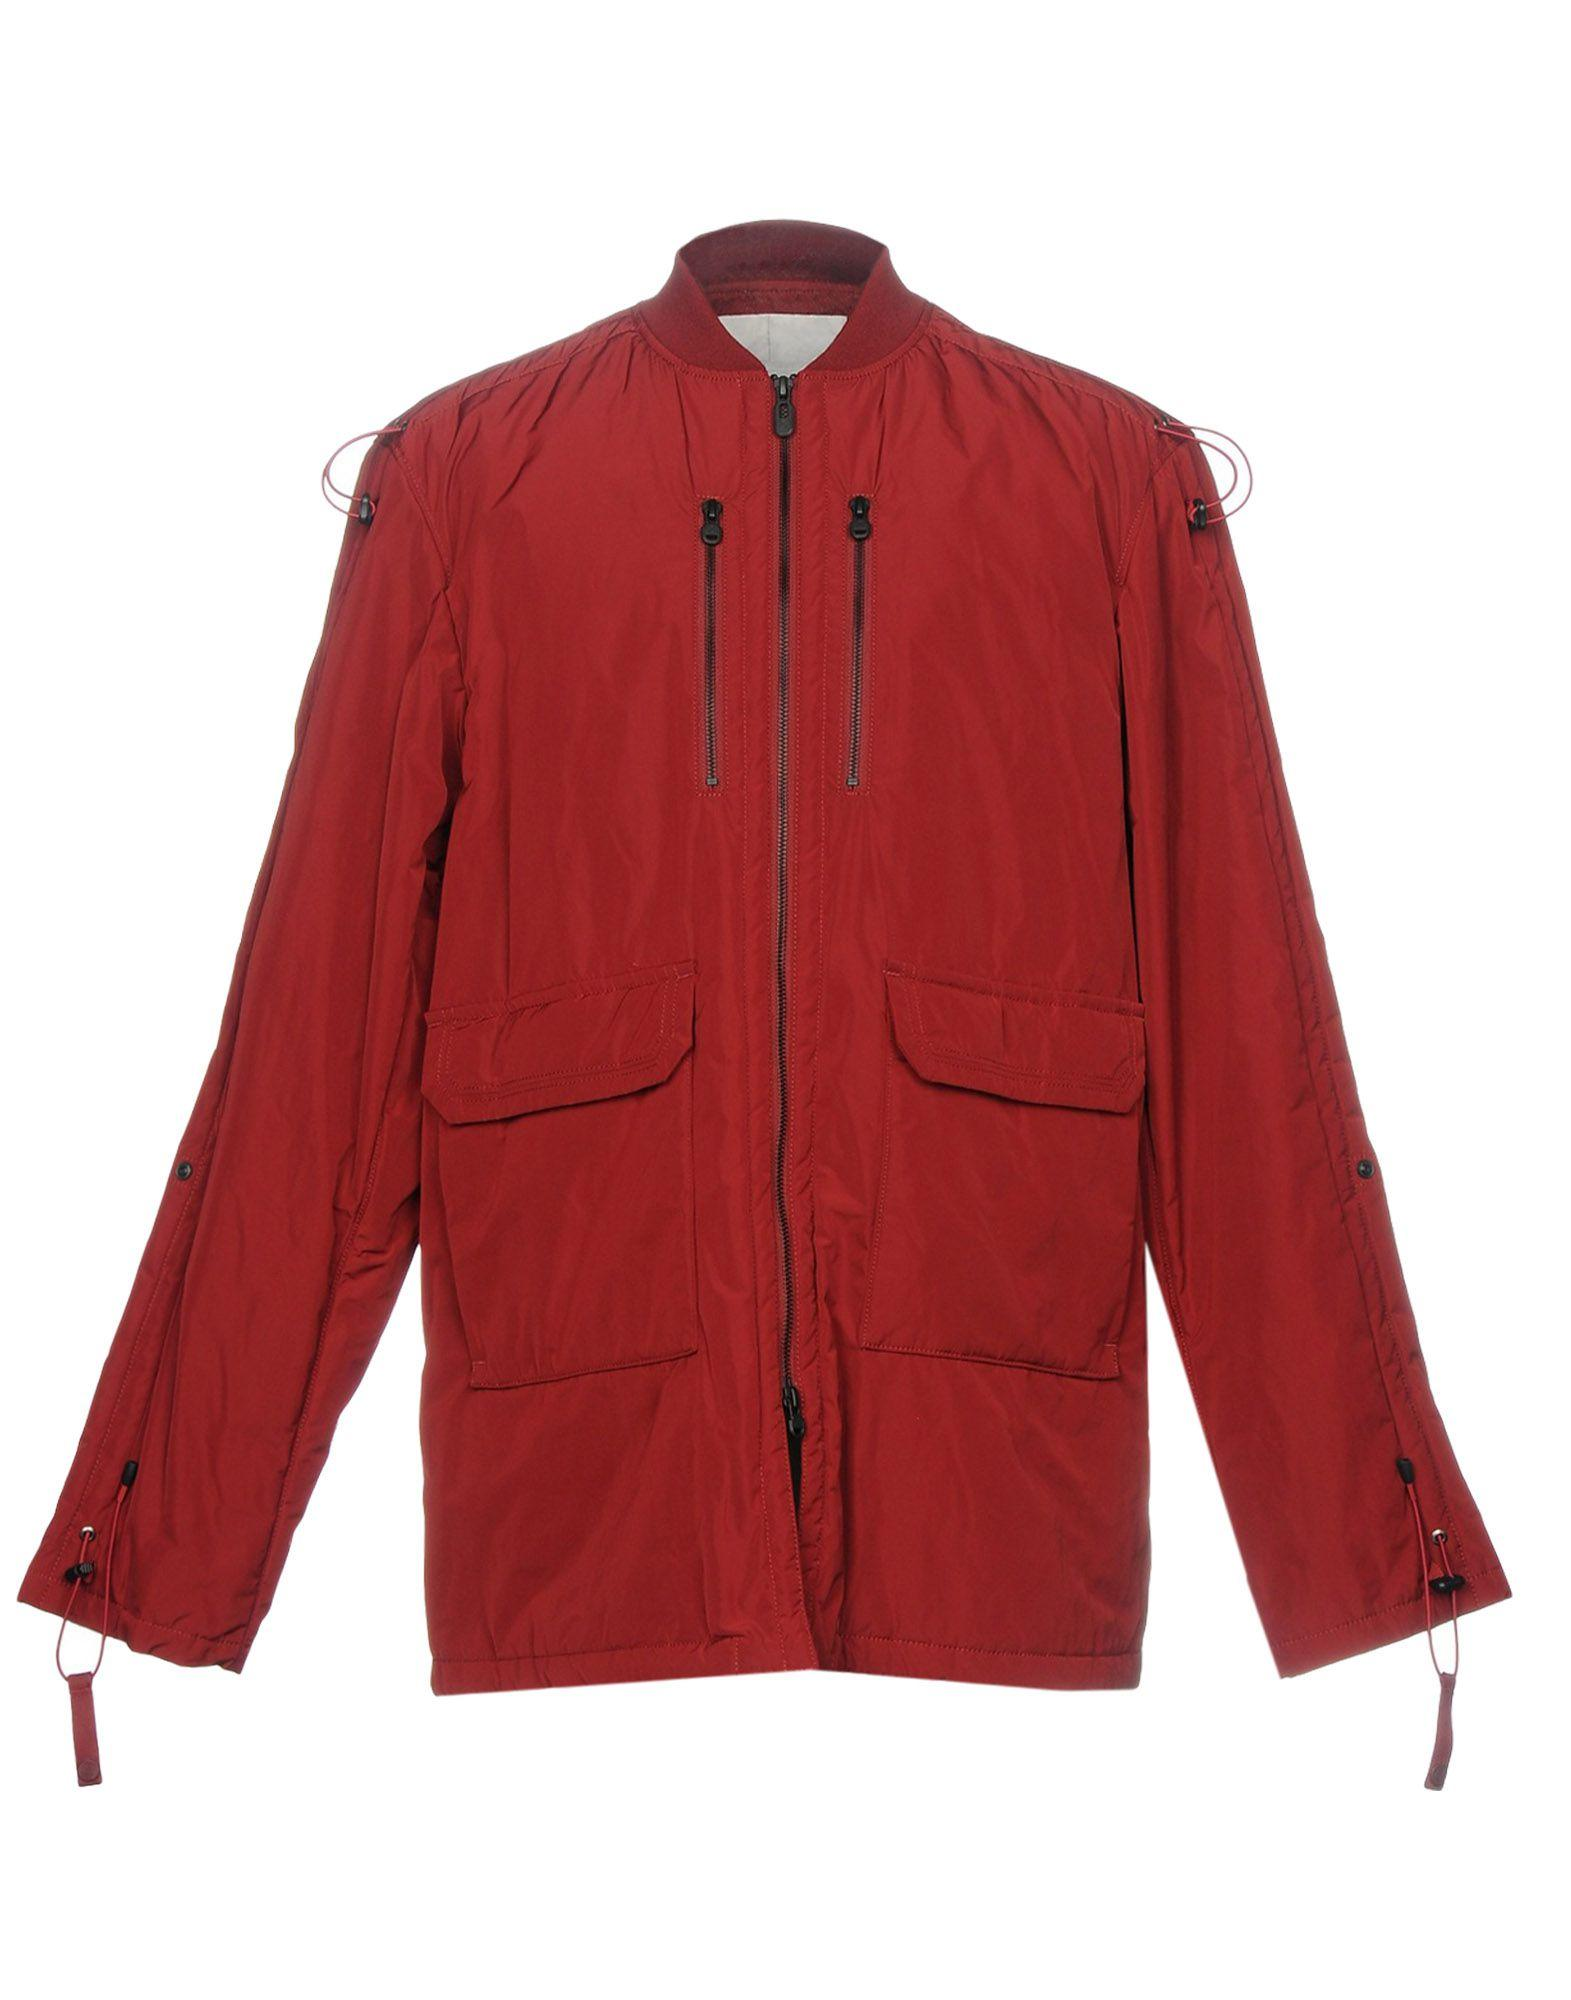 White Mountaineering Full-length Jacket In Maroon